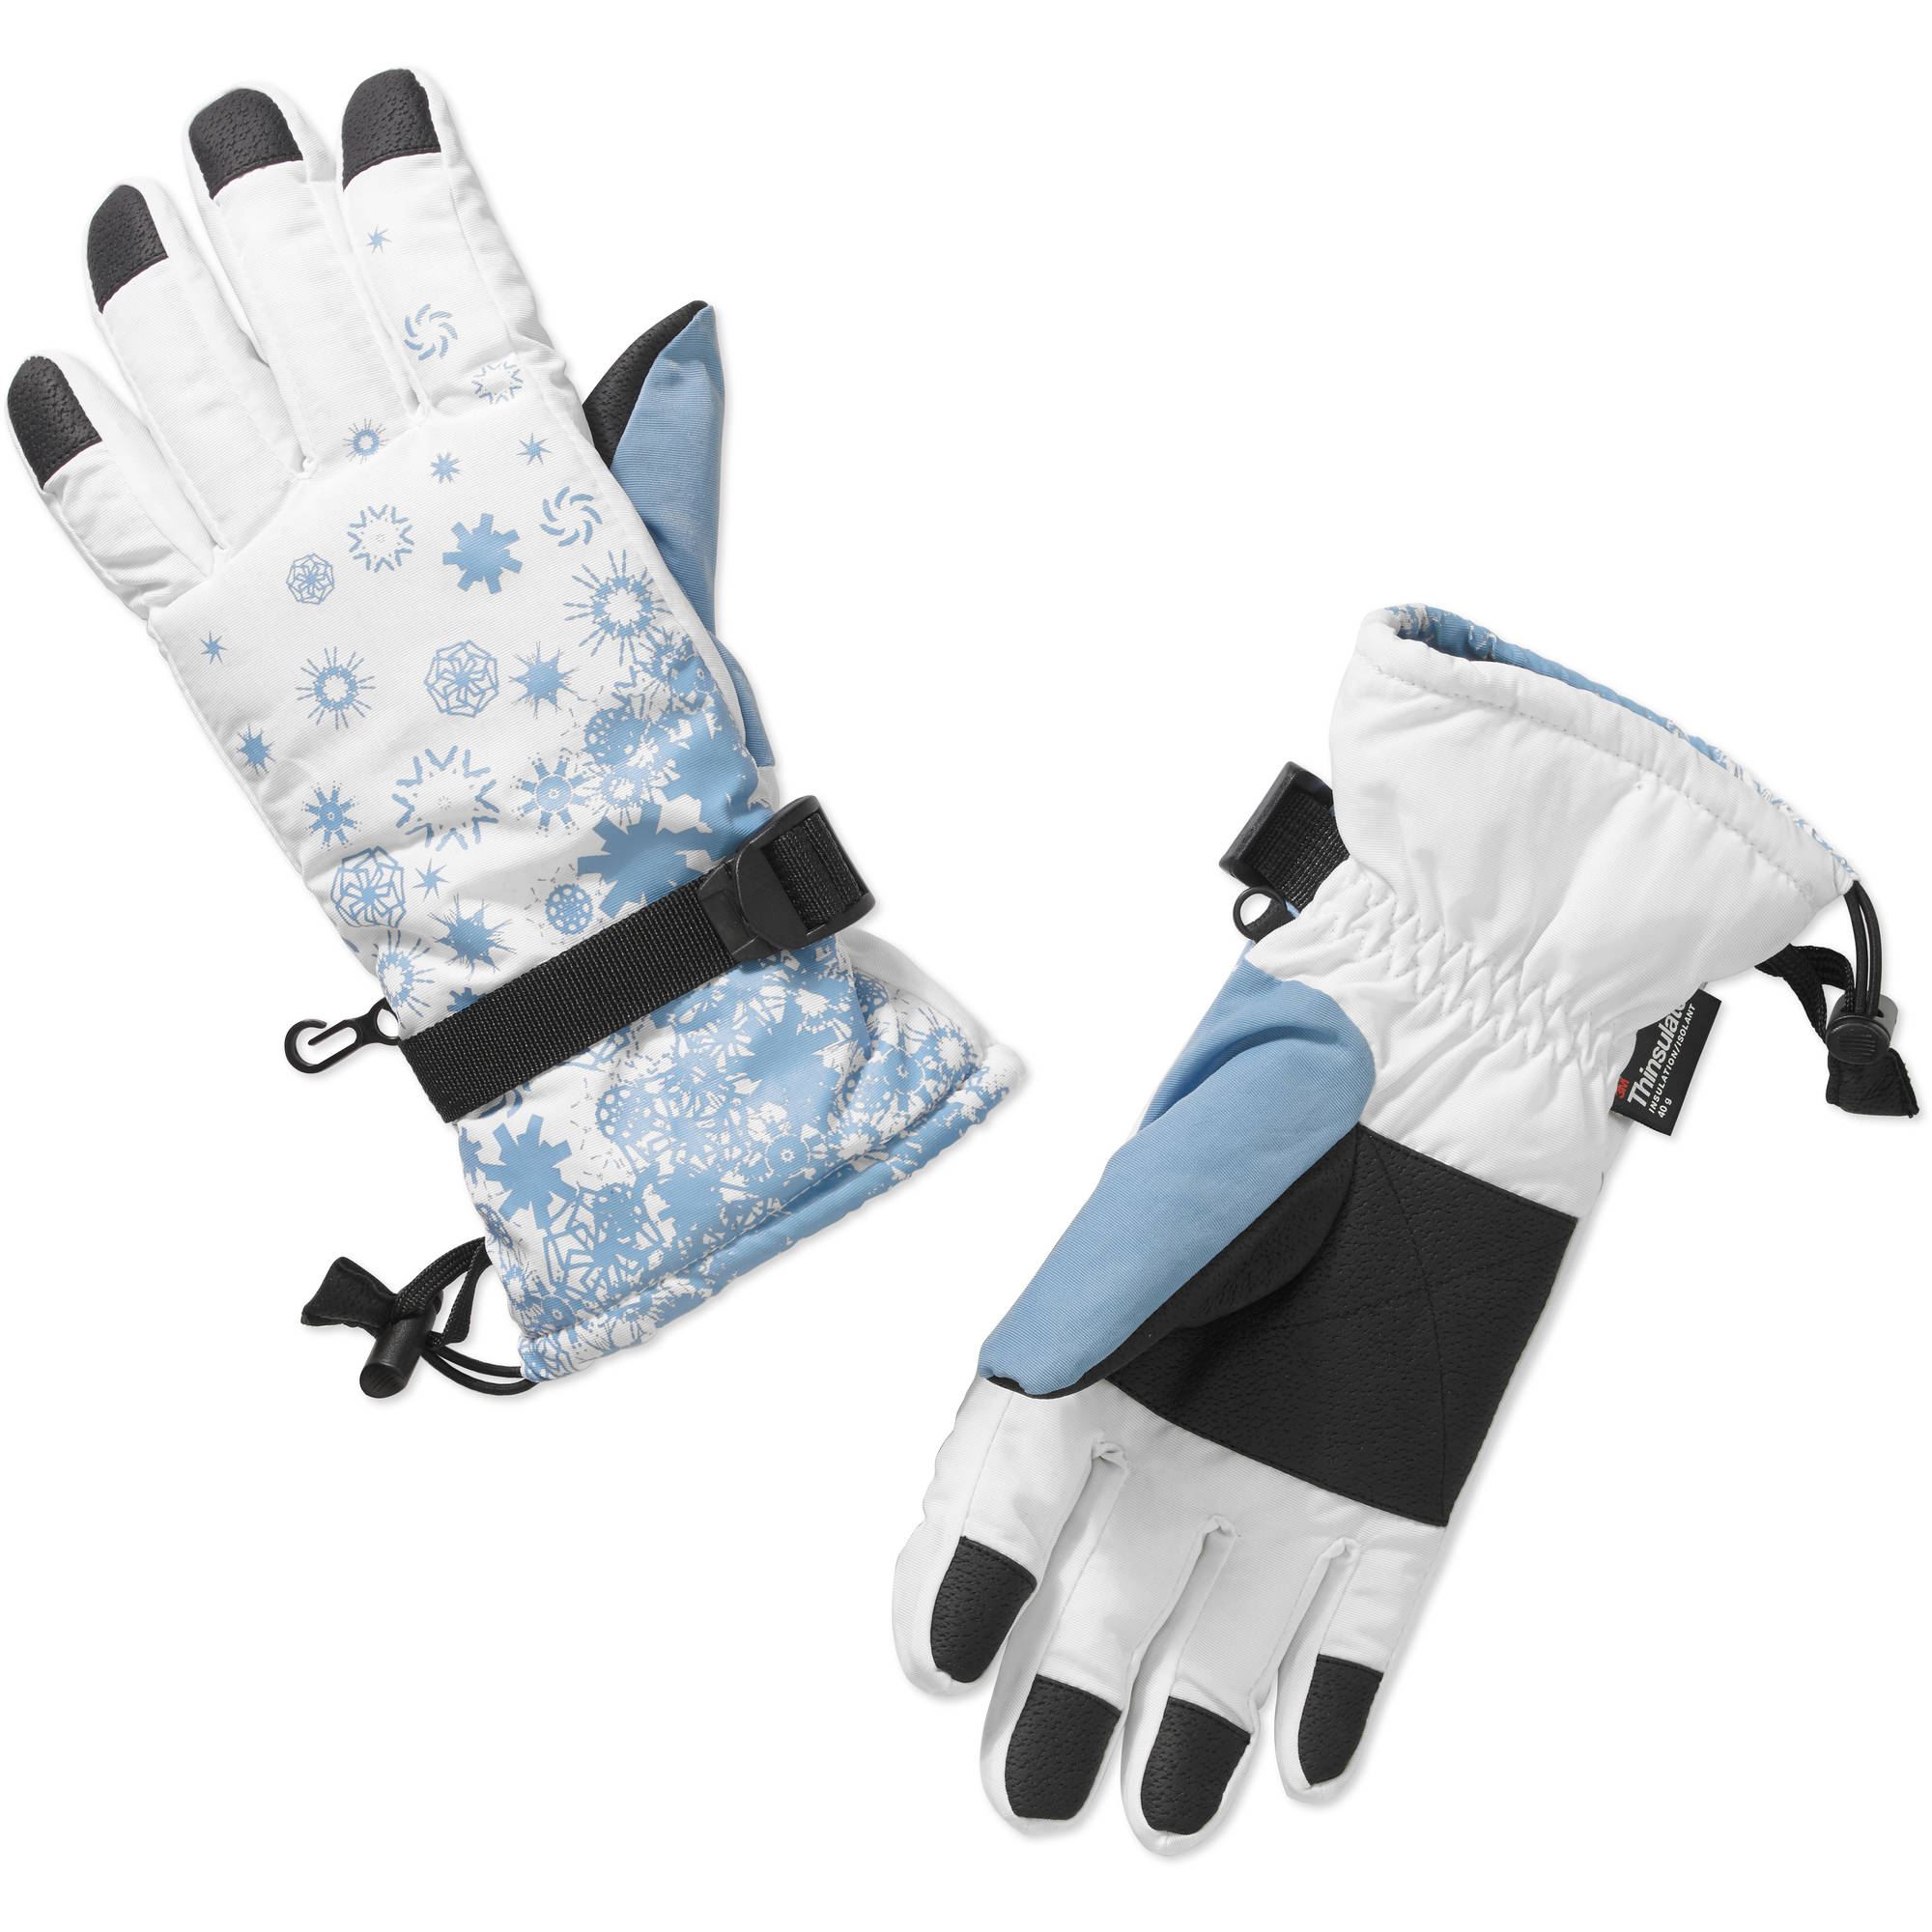 Cold Front Ladies Winter Sport Glove w/Snowflakes